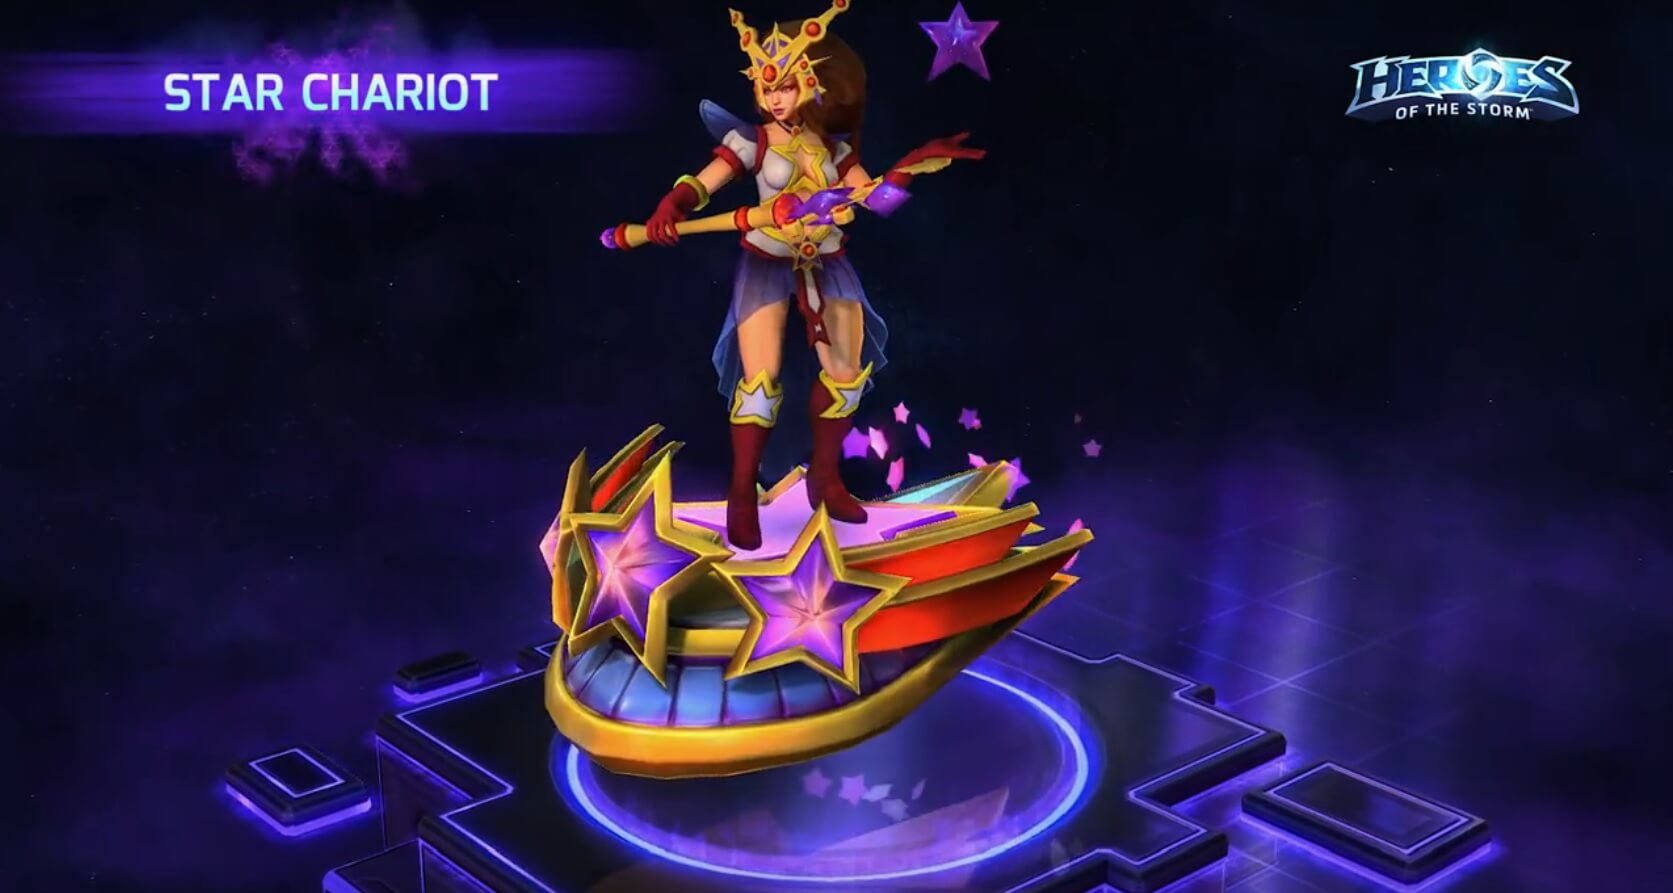 Hots Star Chariot Mount